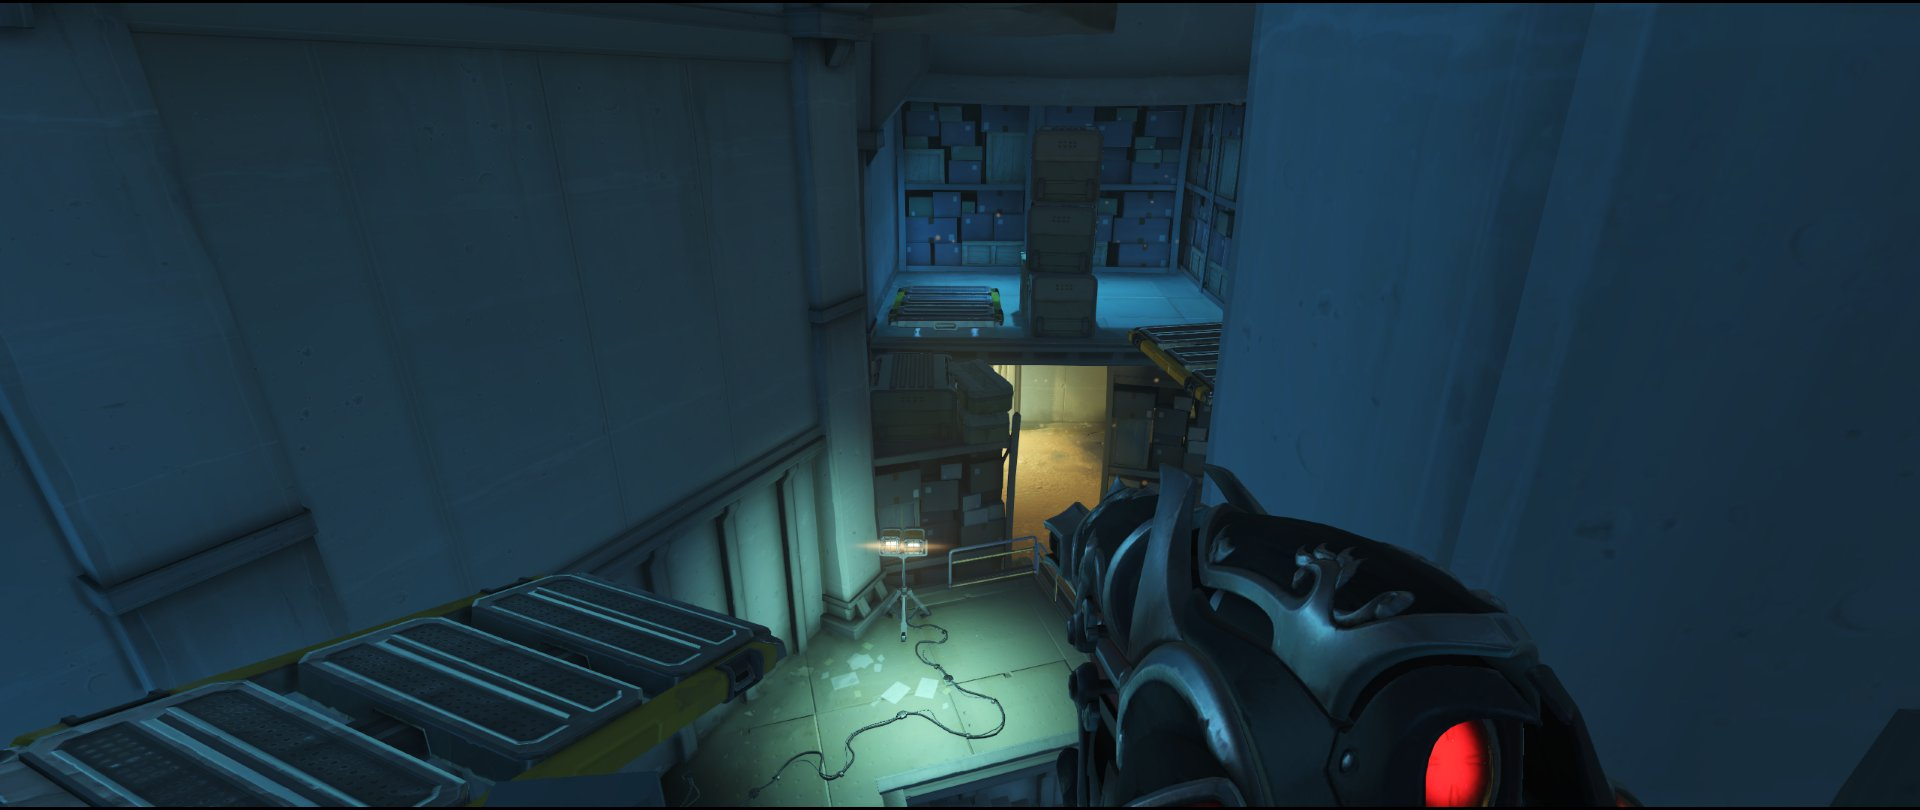 High ground on Truck view to enemy spawn defense sniping spot Widowmaker Route 66.jpg